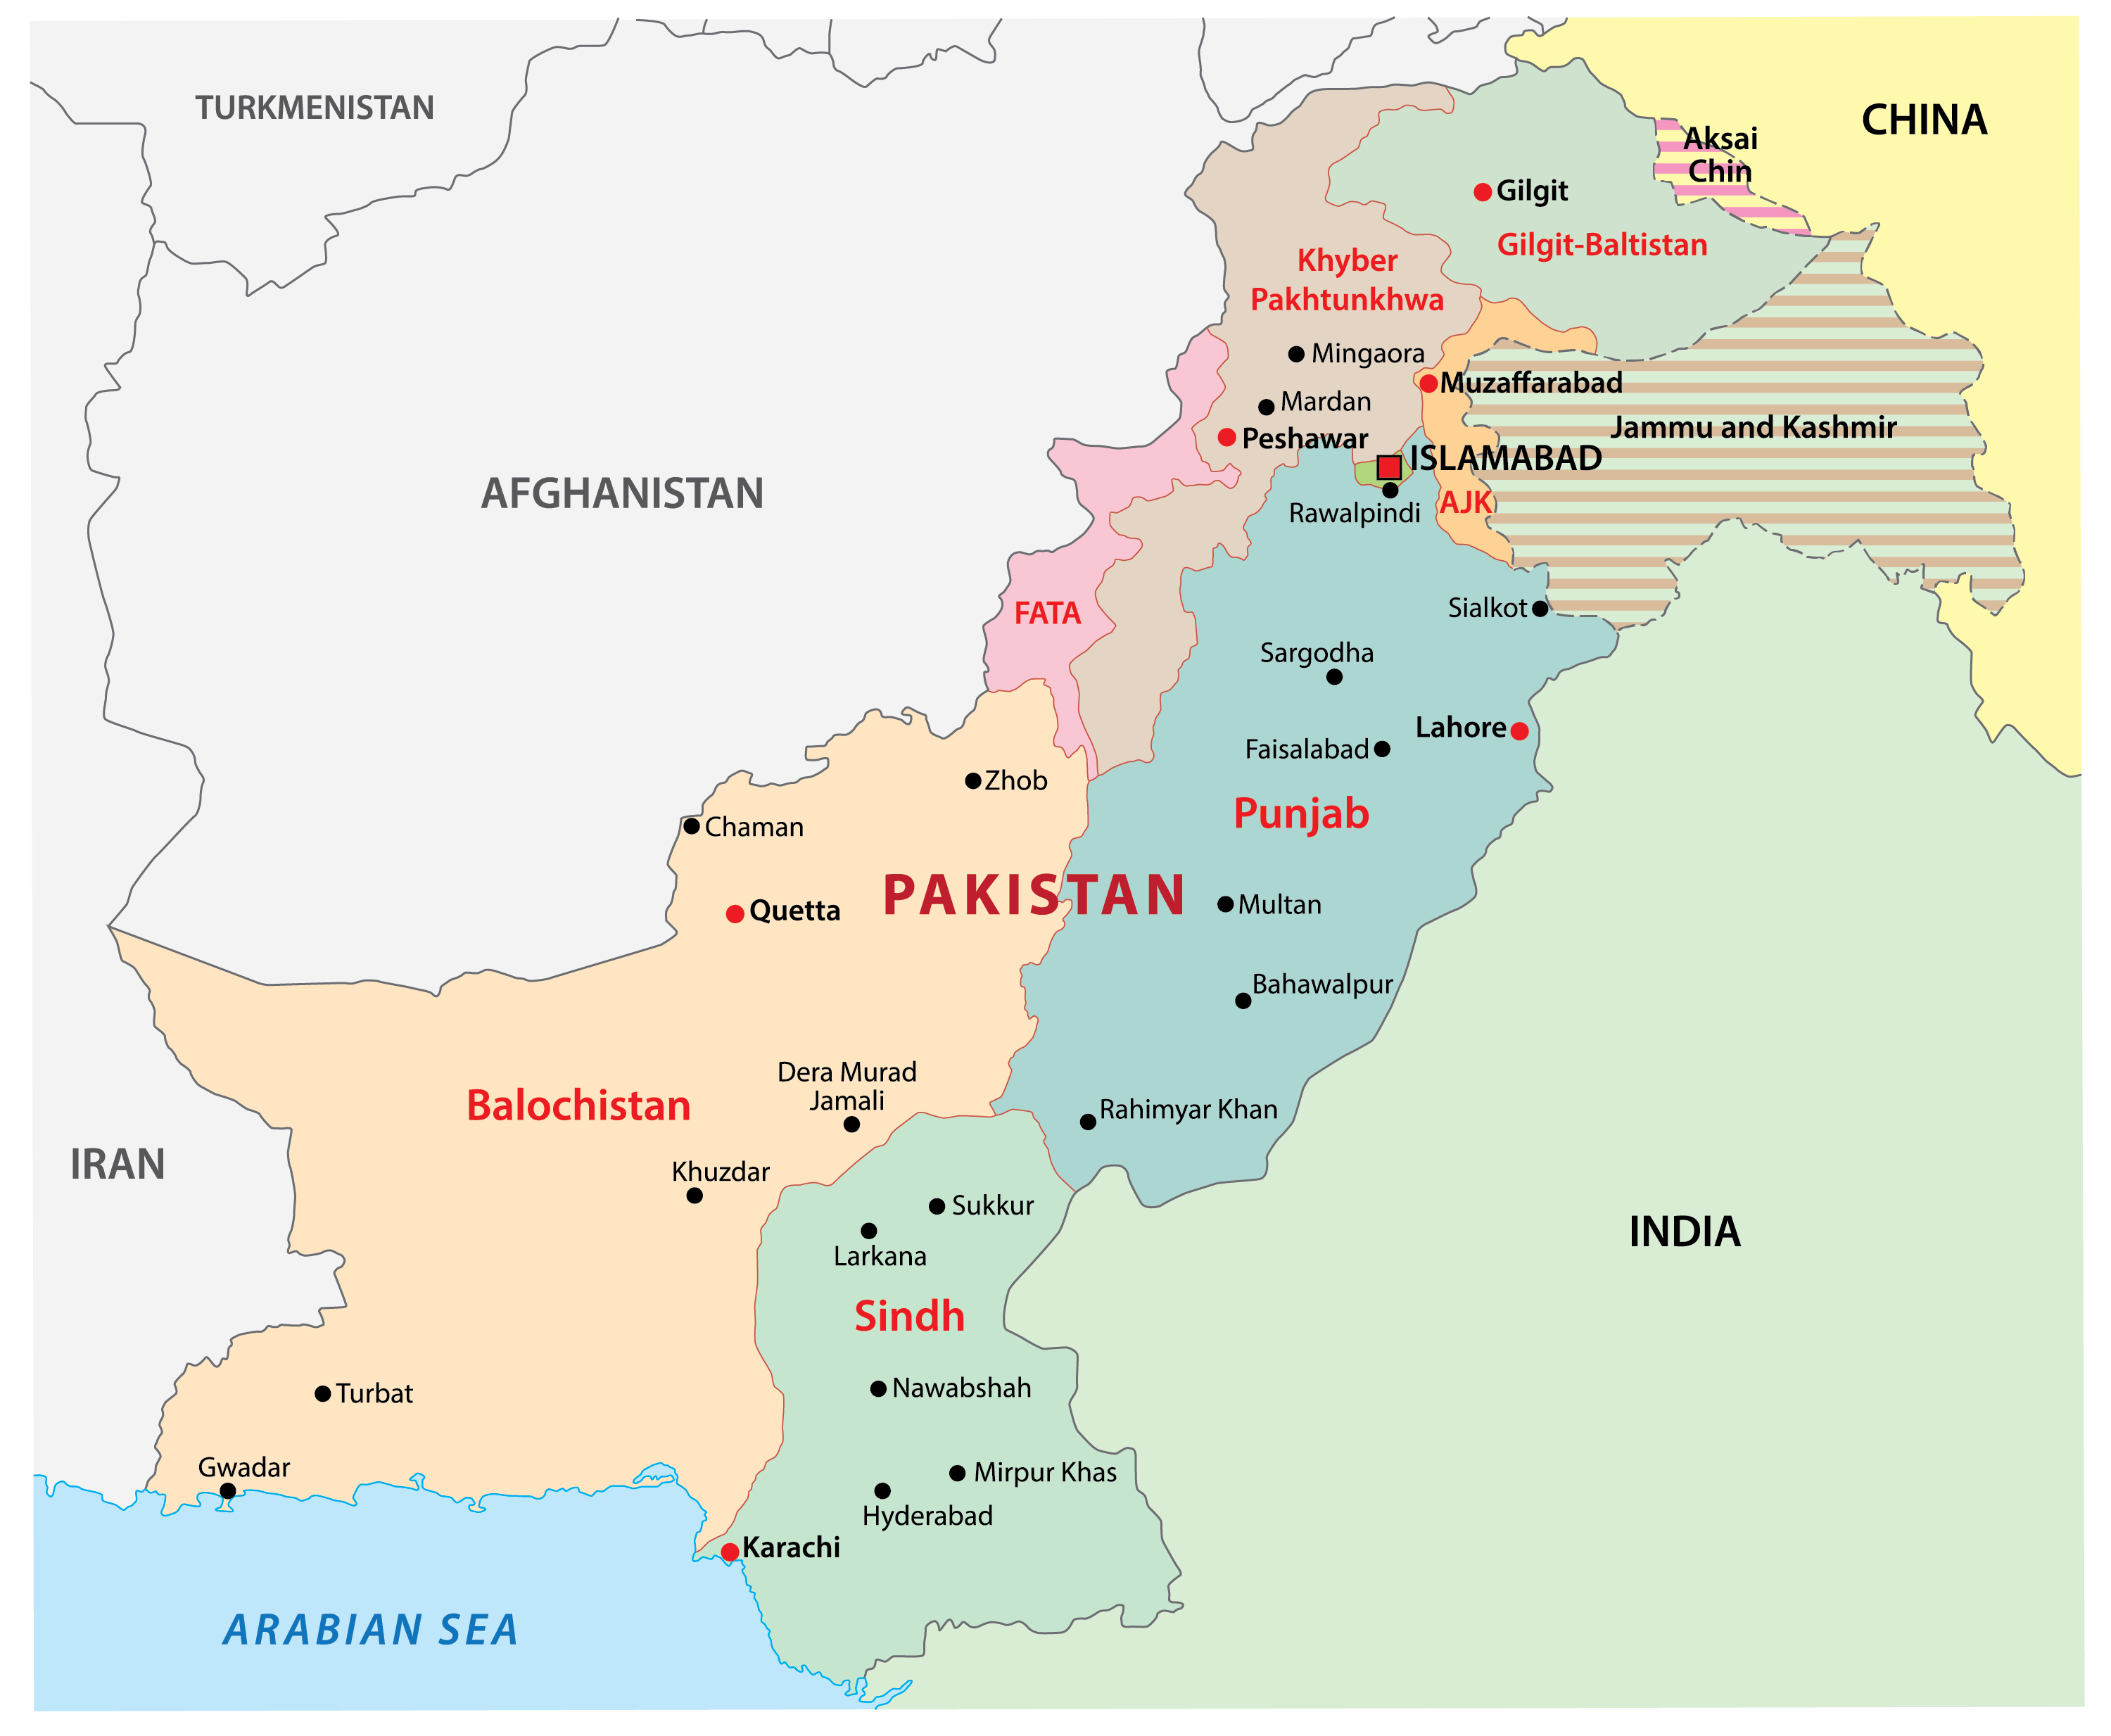 Political Map of Pakistan showing the major administrative divisions and the capital city of Islamabad.